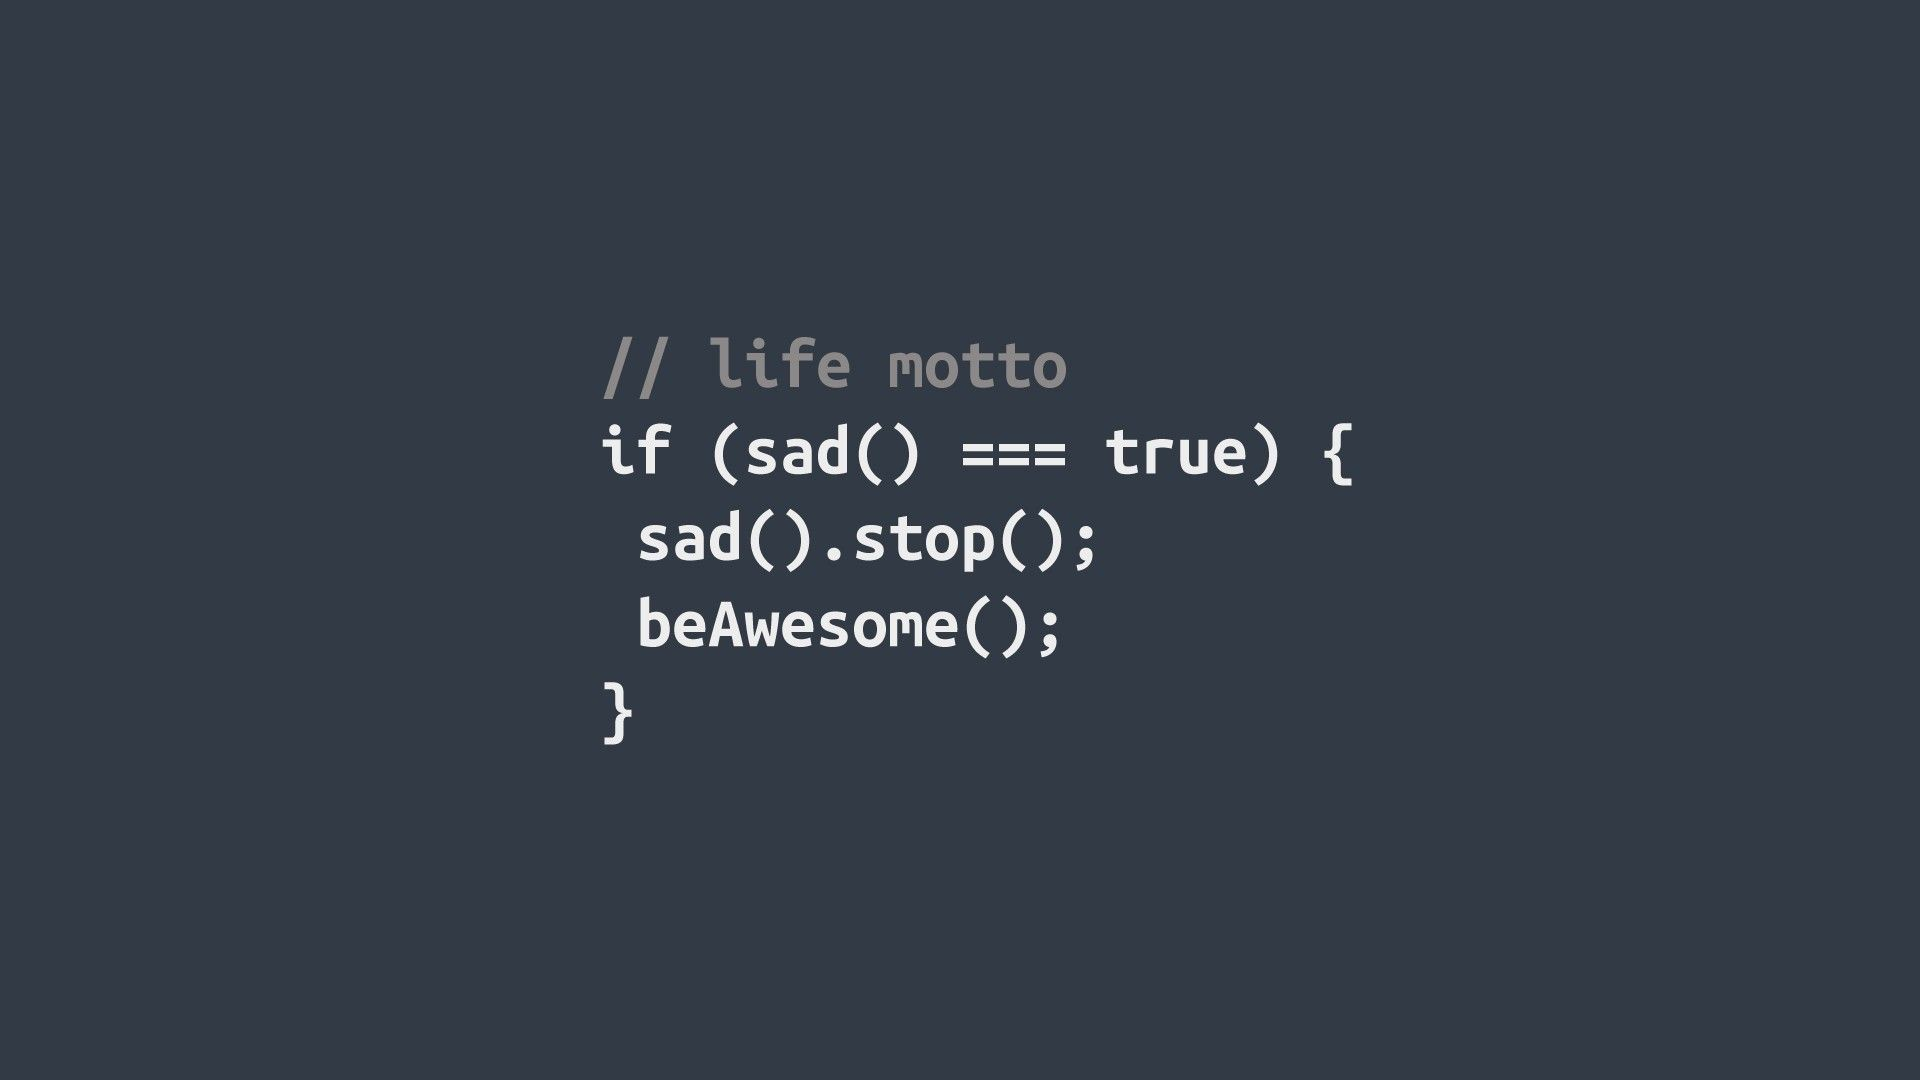 Awesome Code Typography Hd Wallpaper 1920x1080 2616jpg